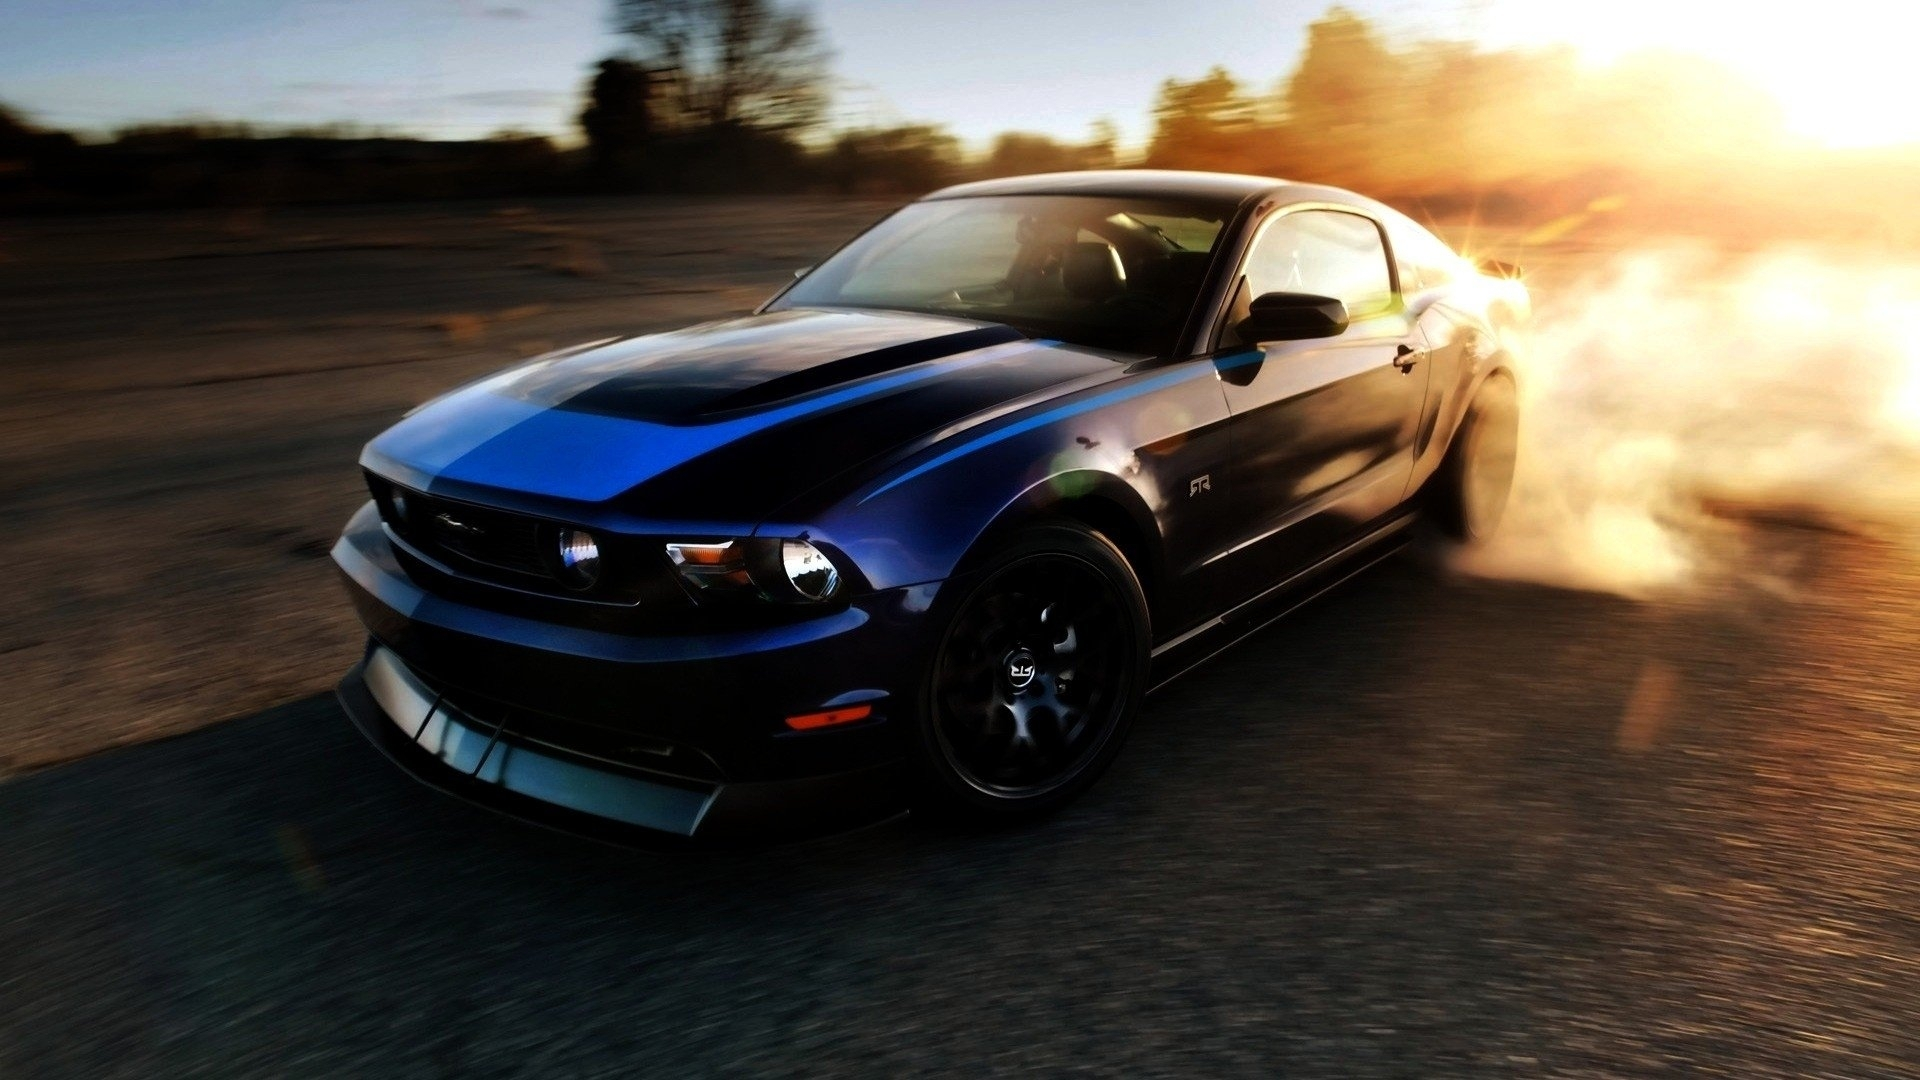 1136 ford mustang hd wallpapers | background images - wallpaper abyss